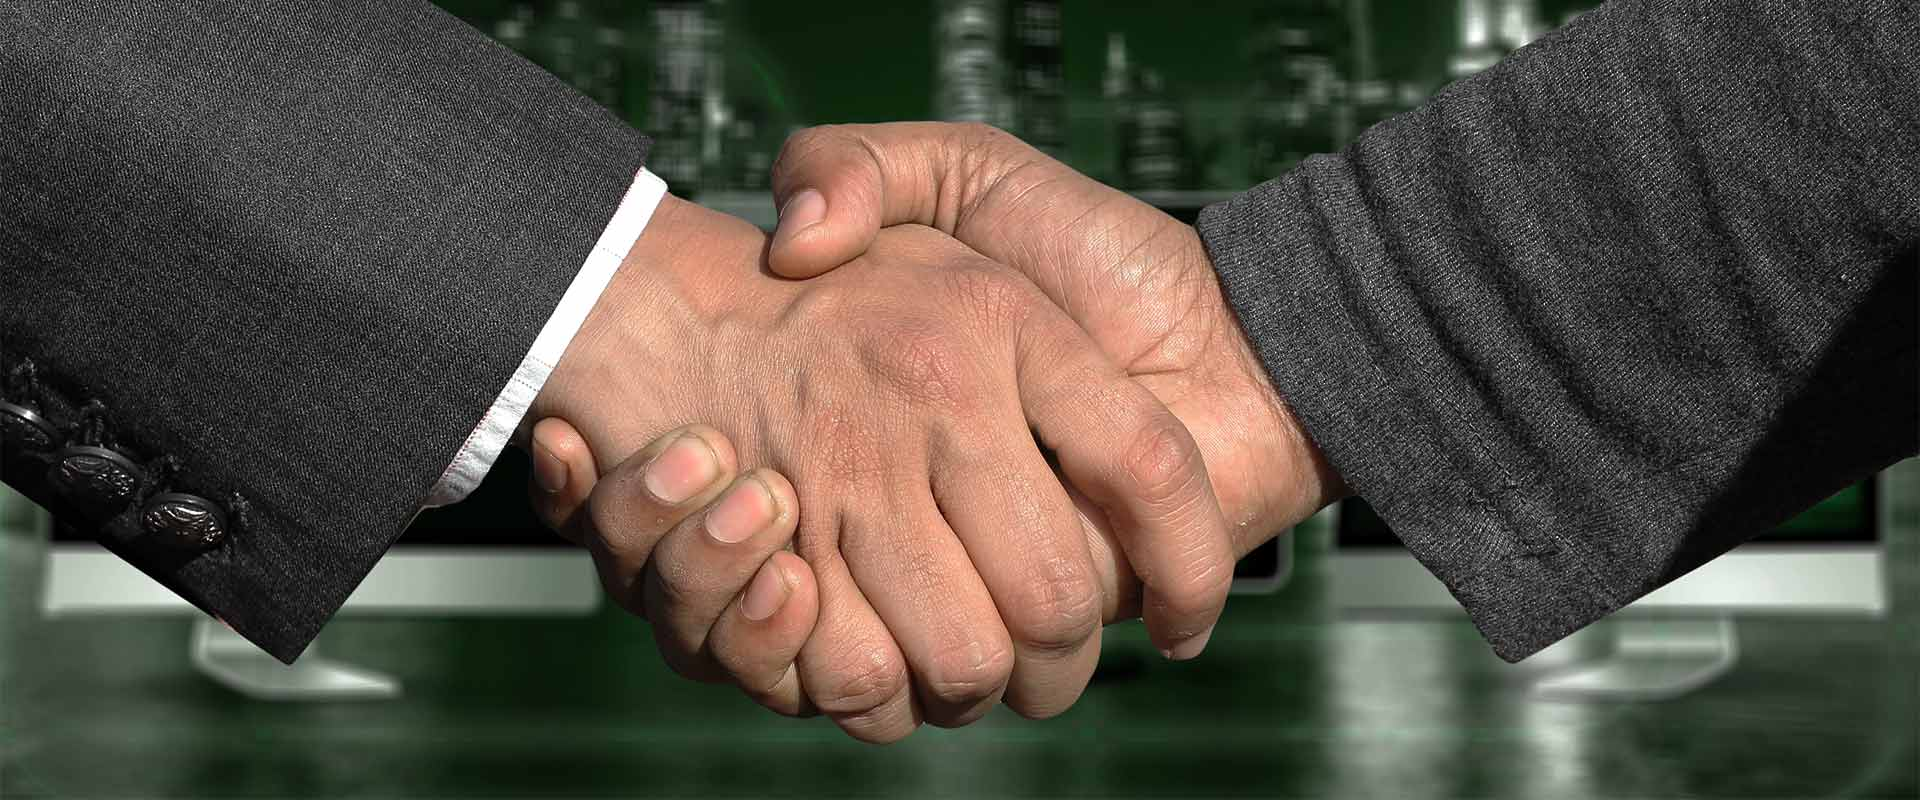 handshake-marketing-client